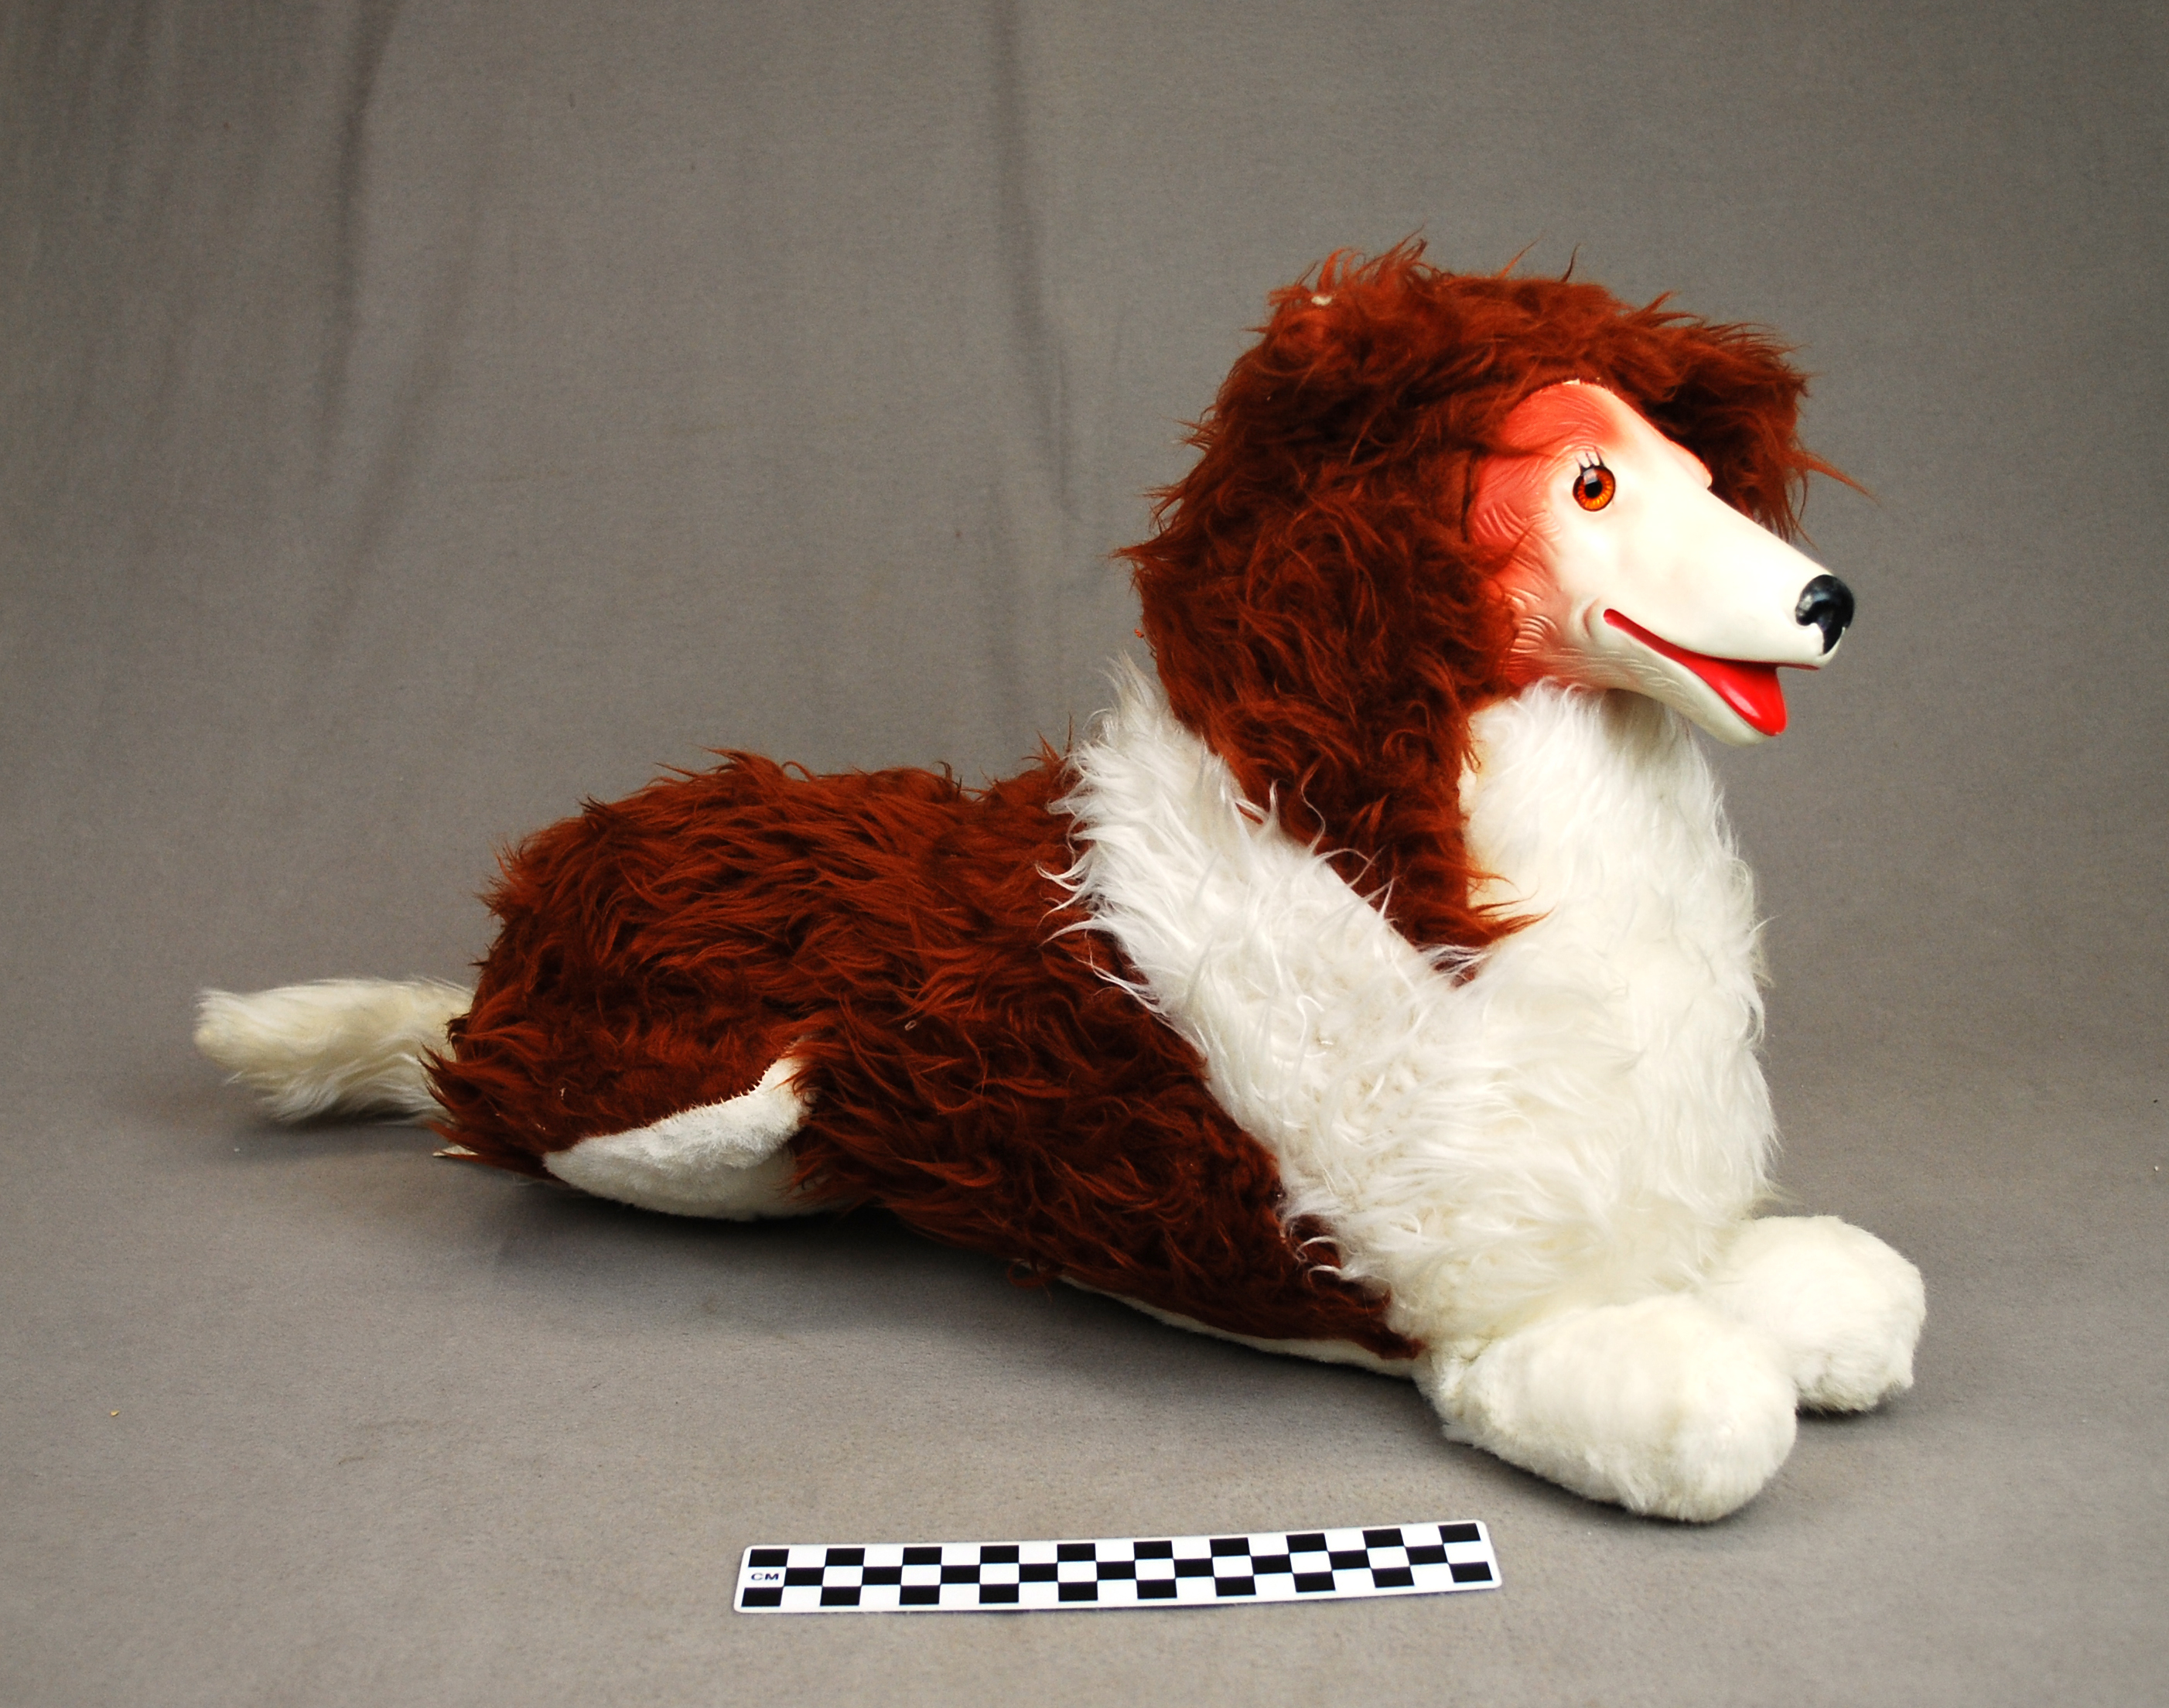 Object: Toy (stuffed animal toy) | UTSA Institute Of Texan Cultures